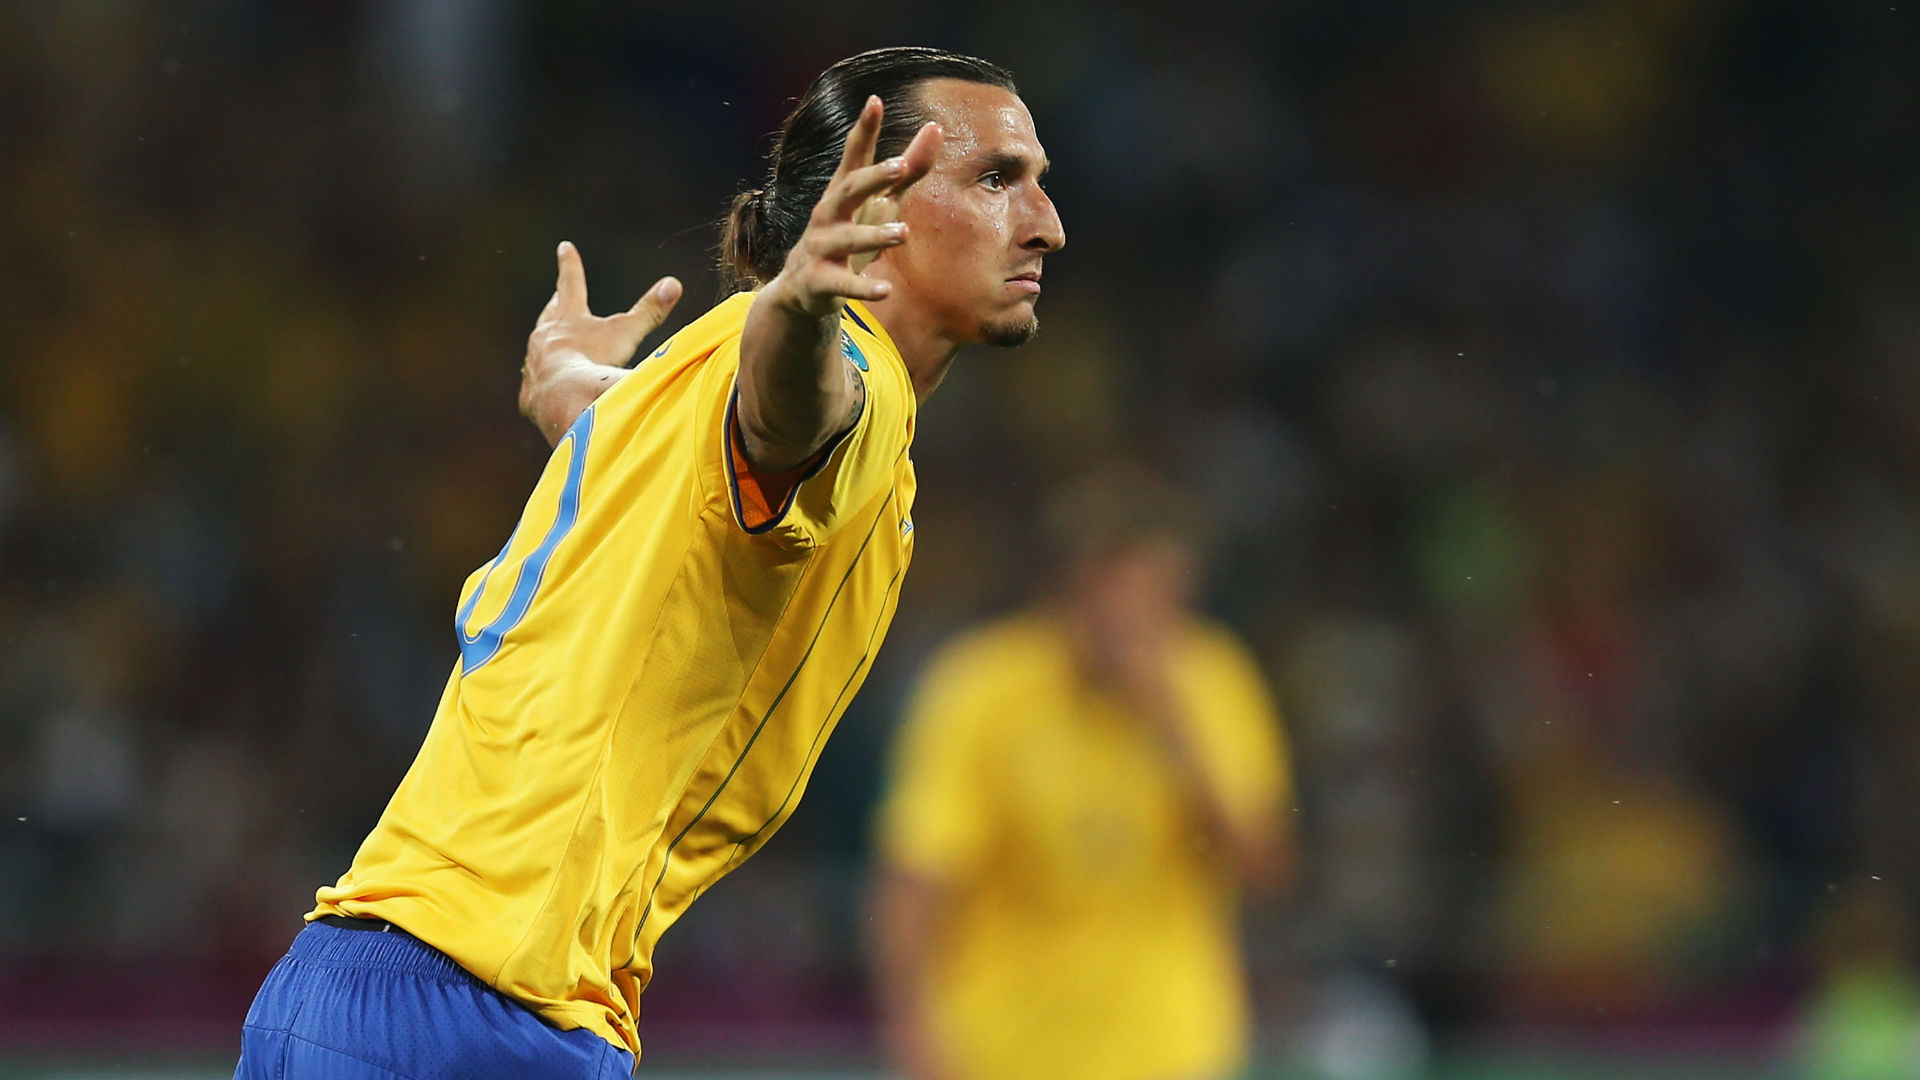 LA Galaxy remain keen on signing free agent Zlatan Ibrahimovic